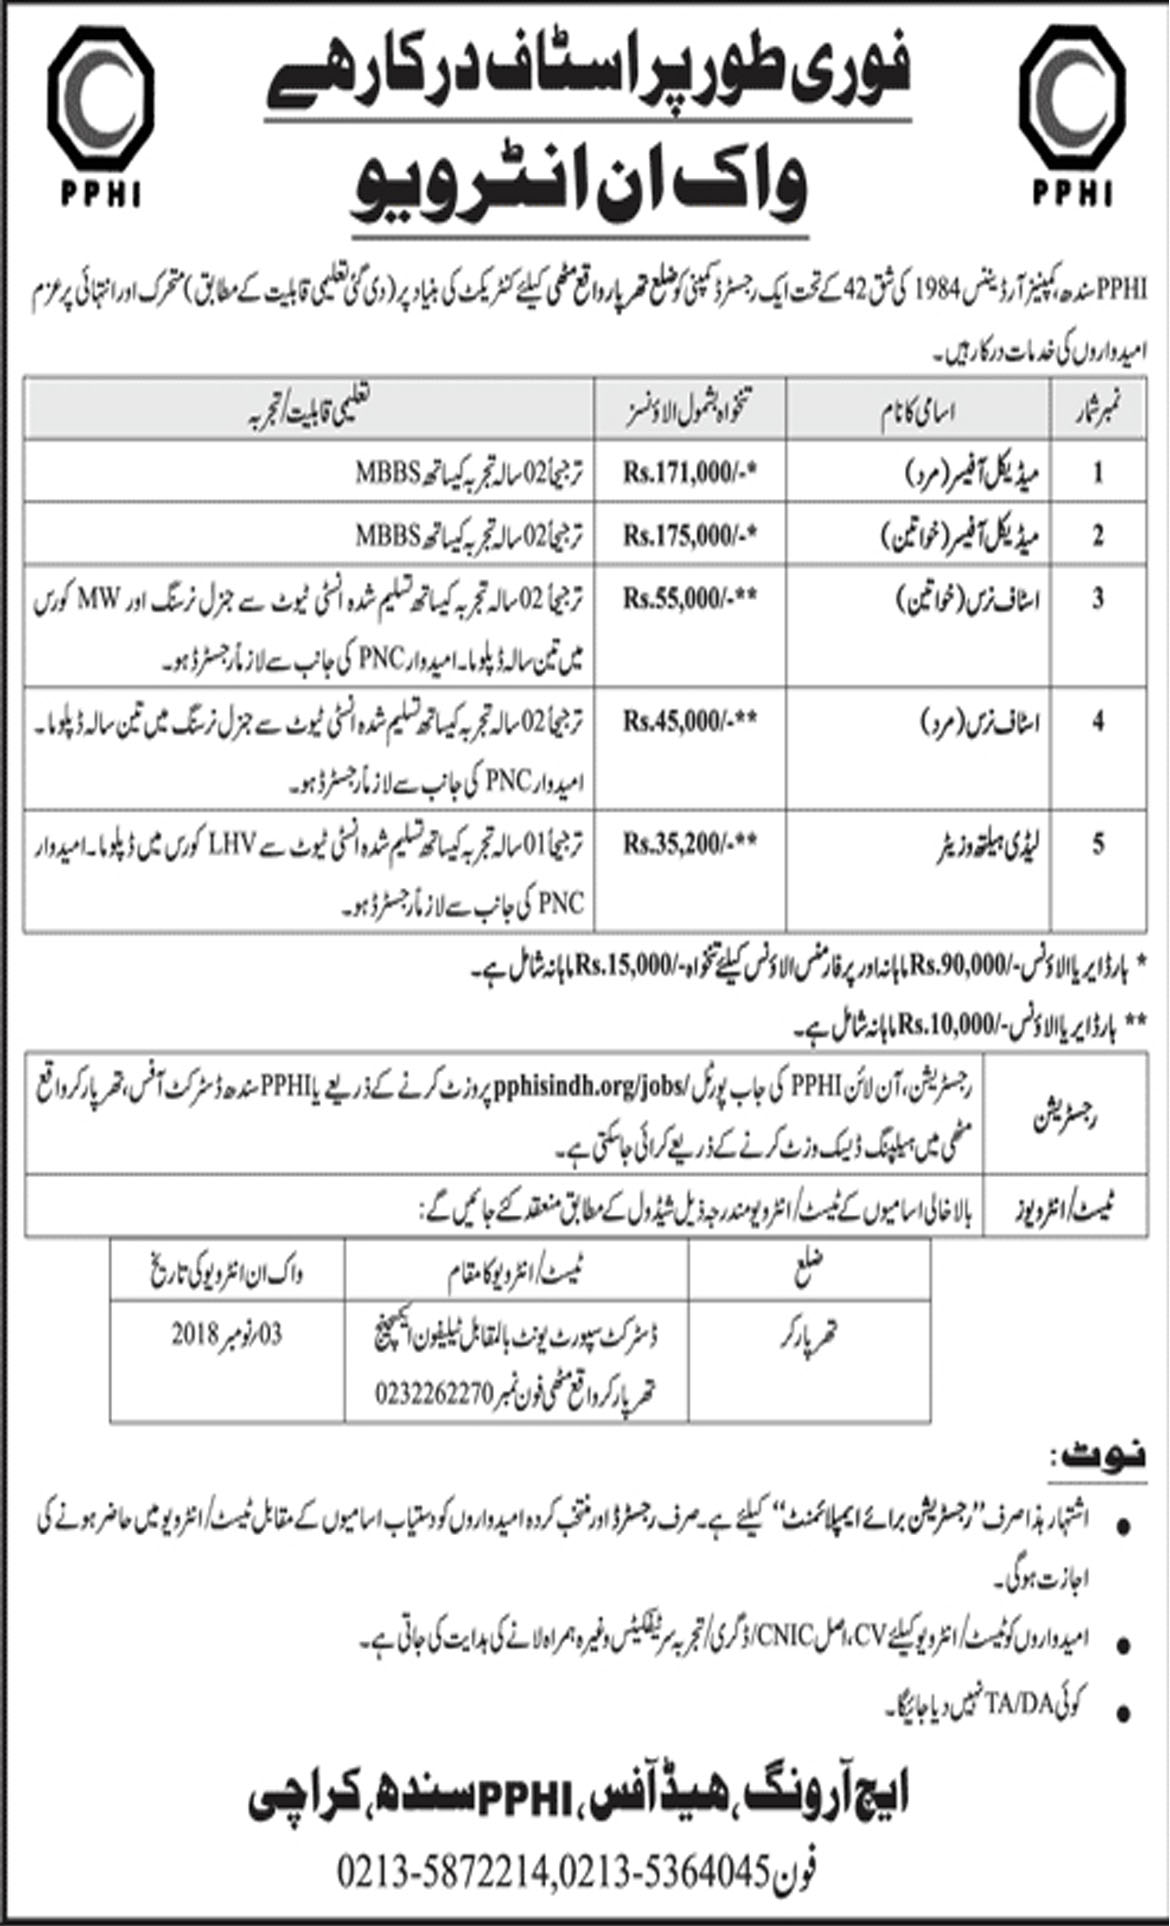 Jobs In Peoples Primary Healthcare Initiative Sindh PPHI 29 Oct 2018